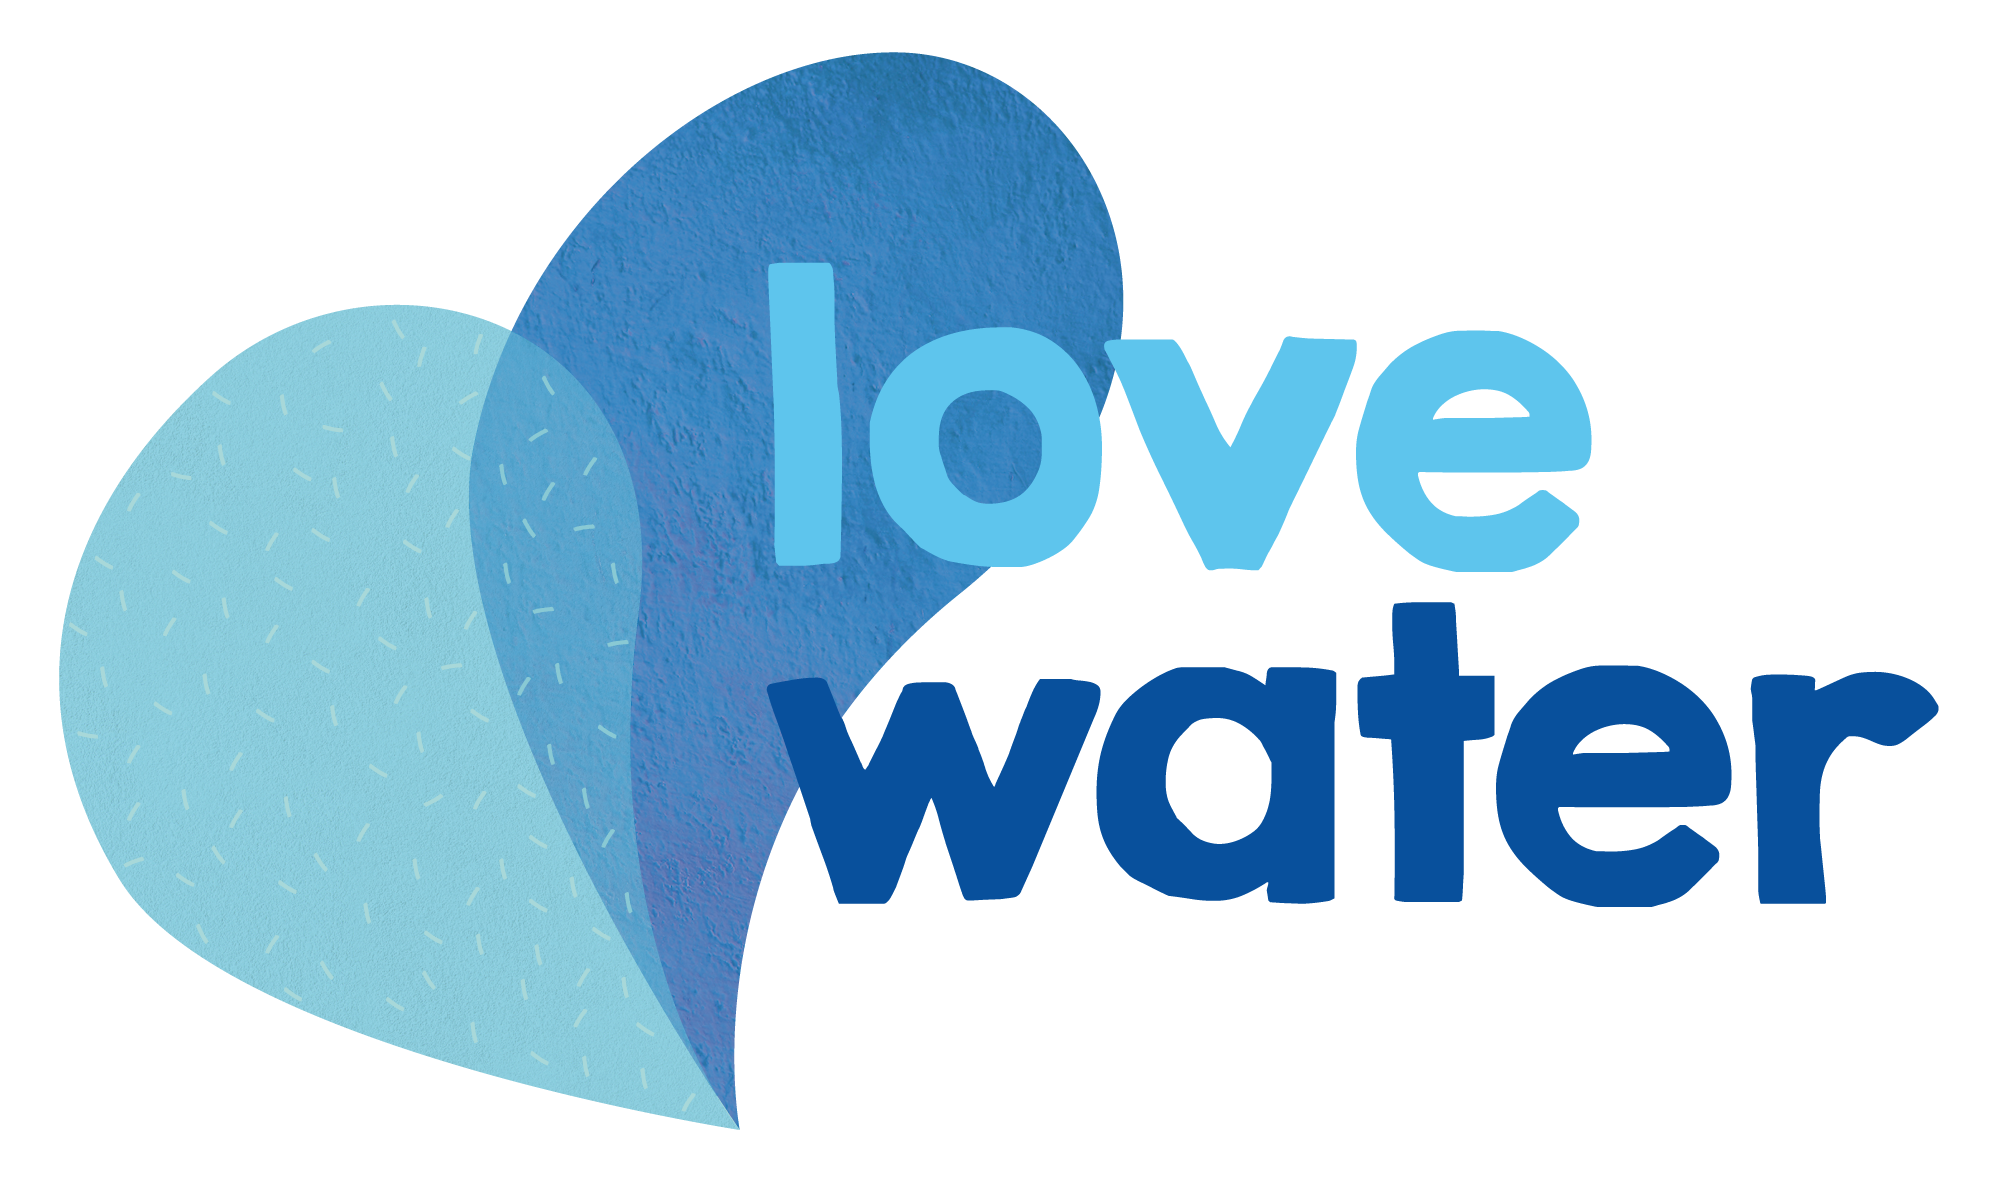 Hunter region showing its love for water one year on